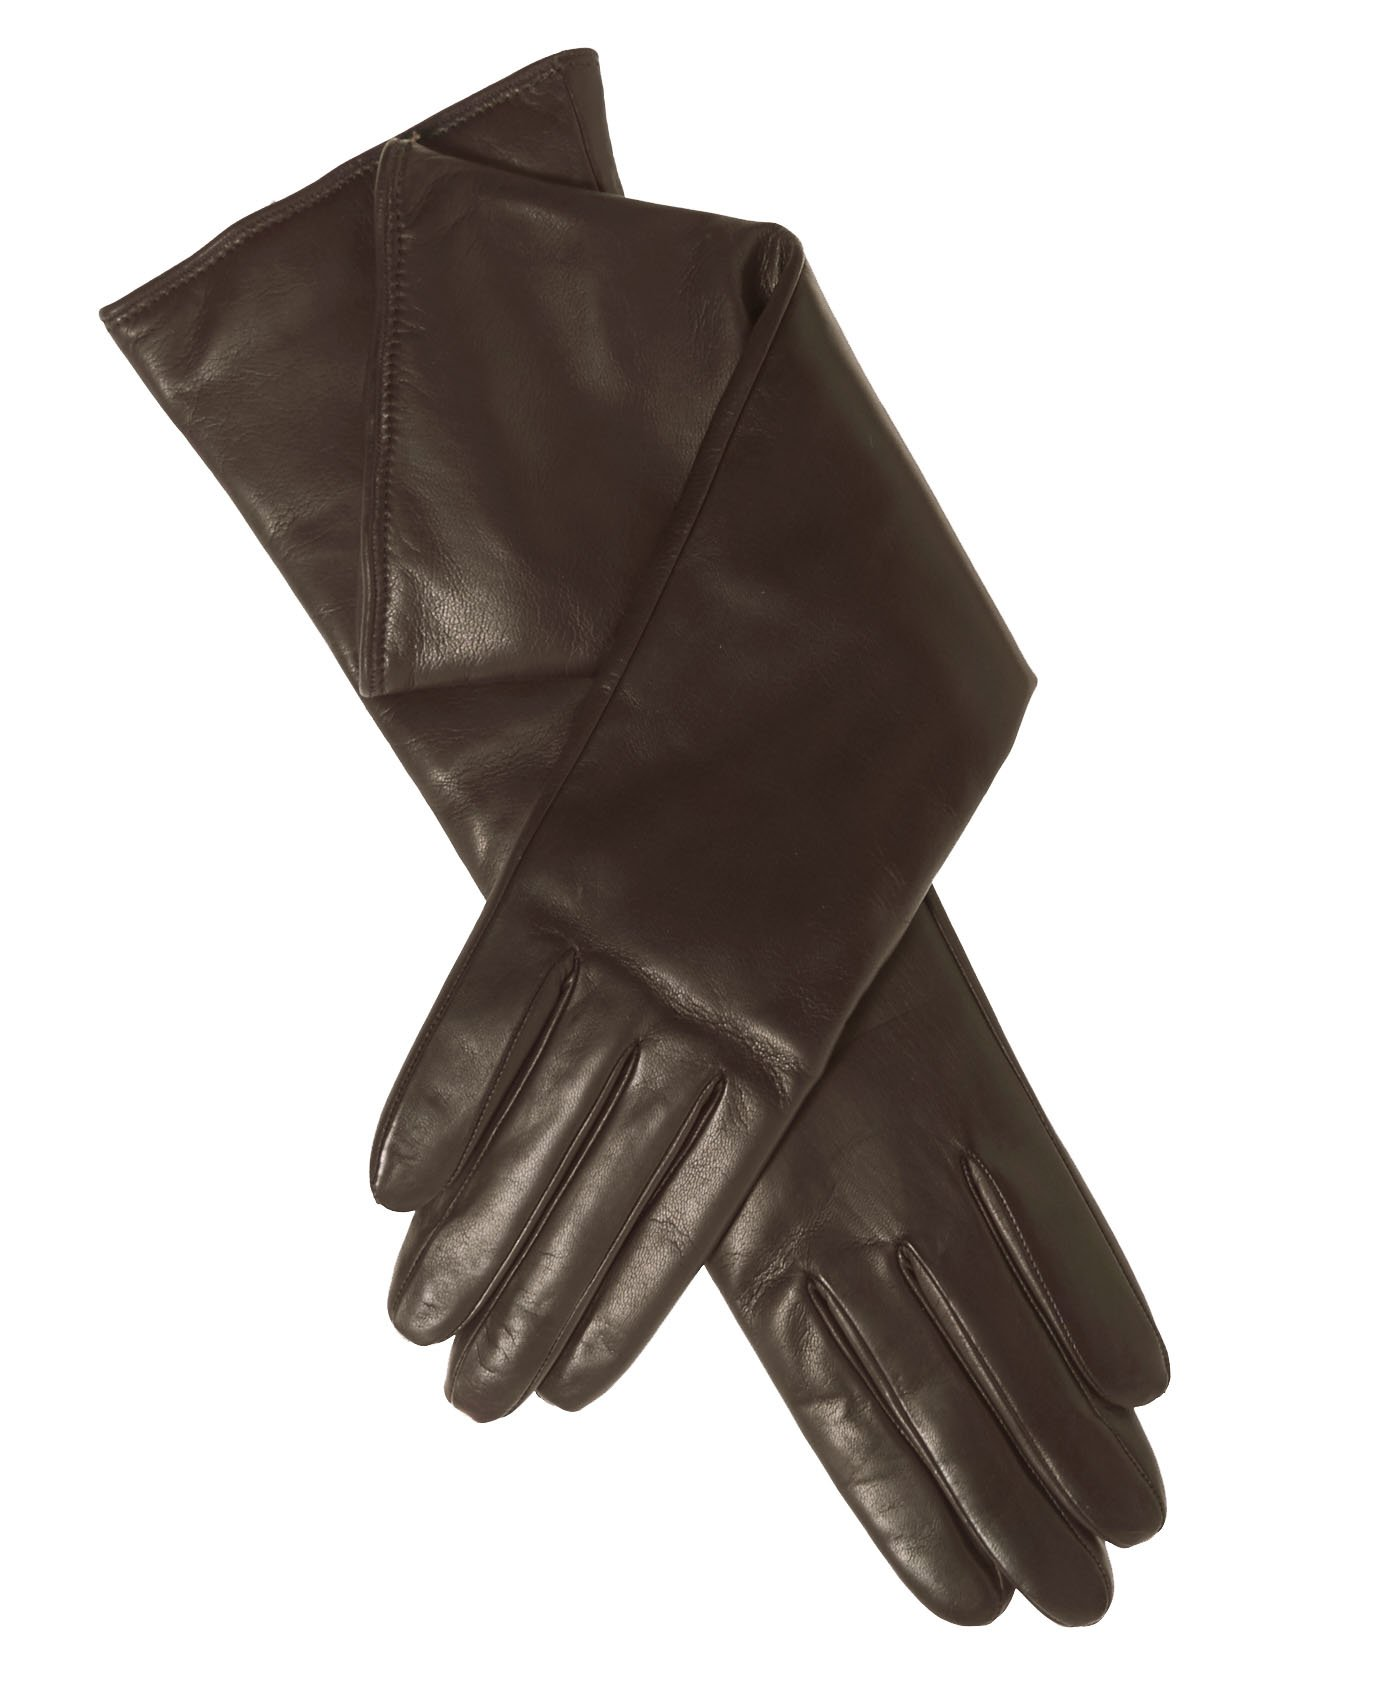 Fratelli Orsini Women's Italian ''6 Button Length'' Cashmere Lined Leather Gloves Size 8 Color Brown